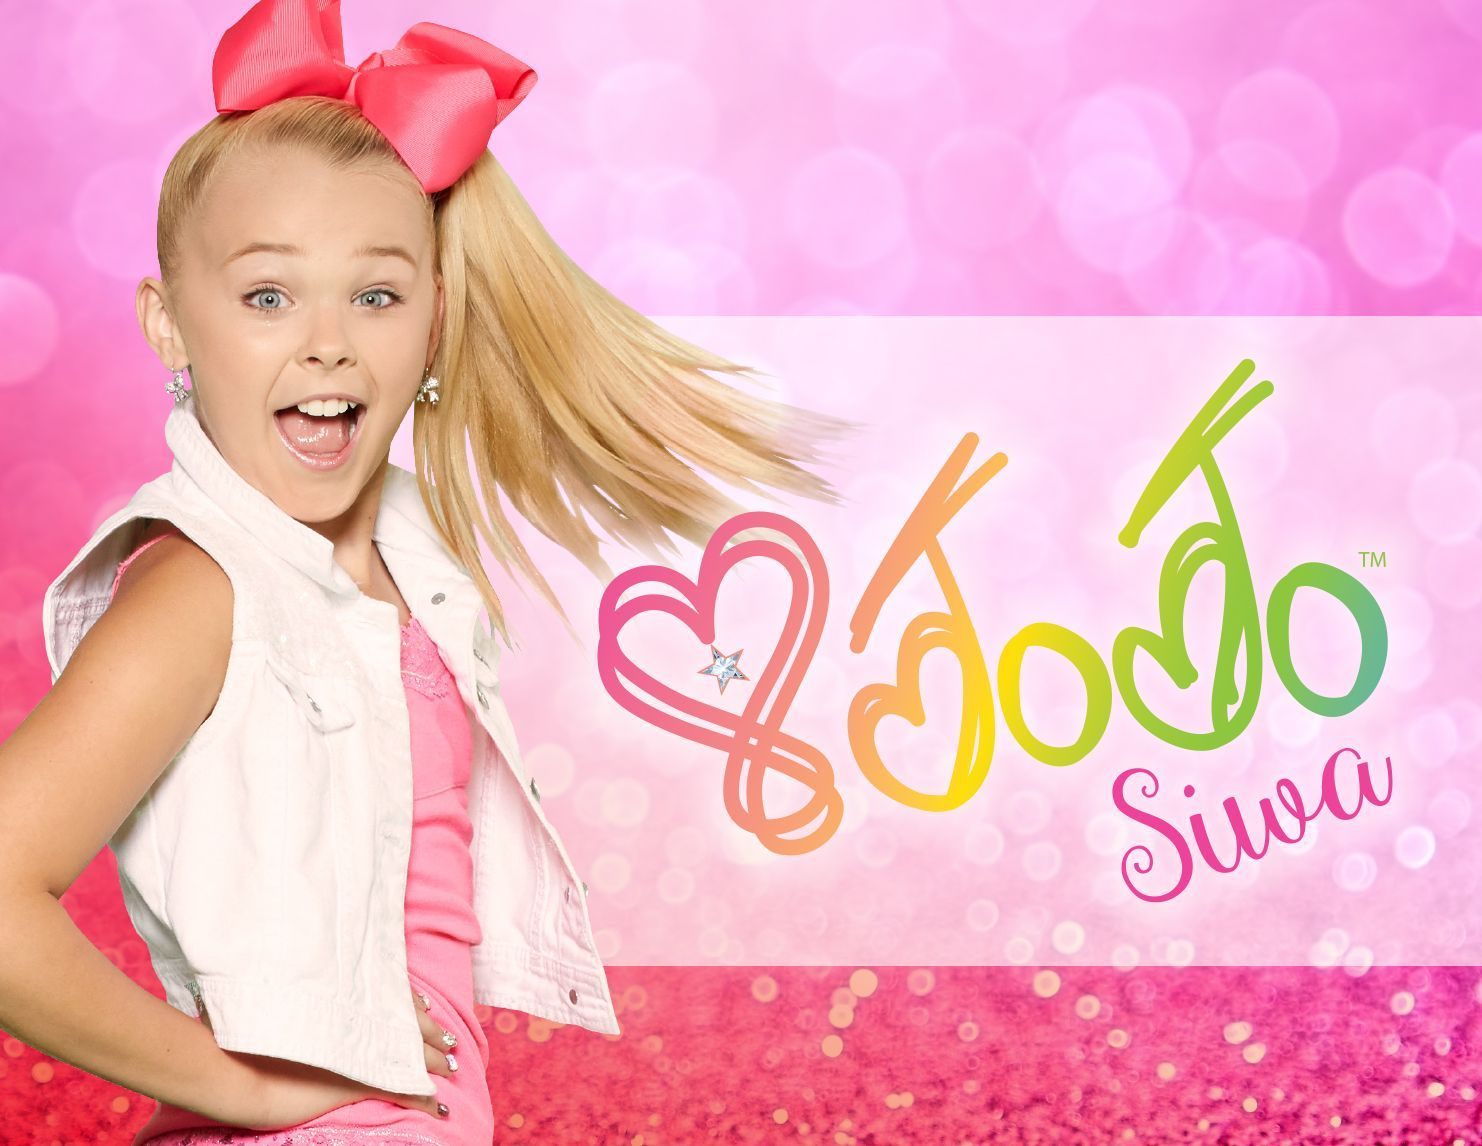 JoJo Siwa Wallpaper – A Great Quality Wallpaper For Your Computer